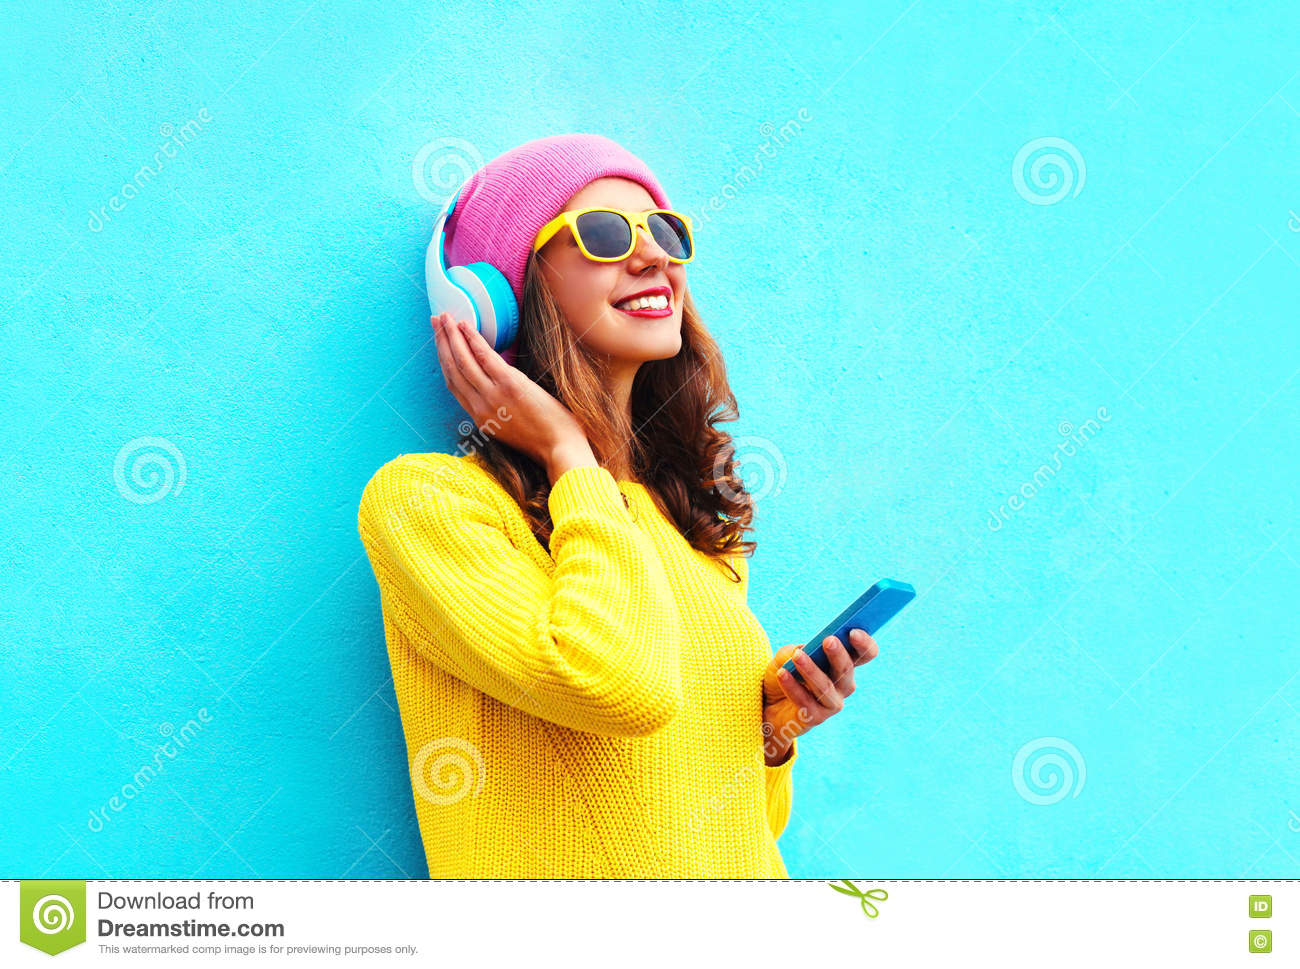 67be285ad3a Fashion pretty sweet carefree girl listening to music in headphones with  smartphone wearing a colorful pink